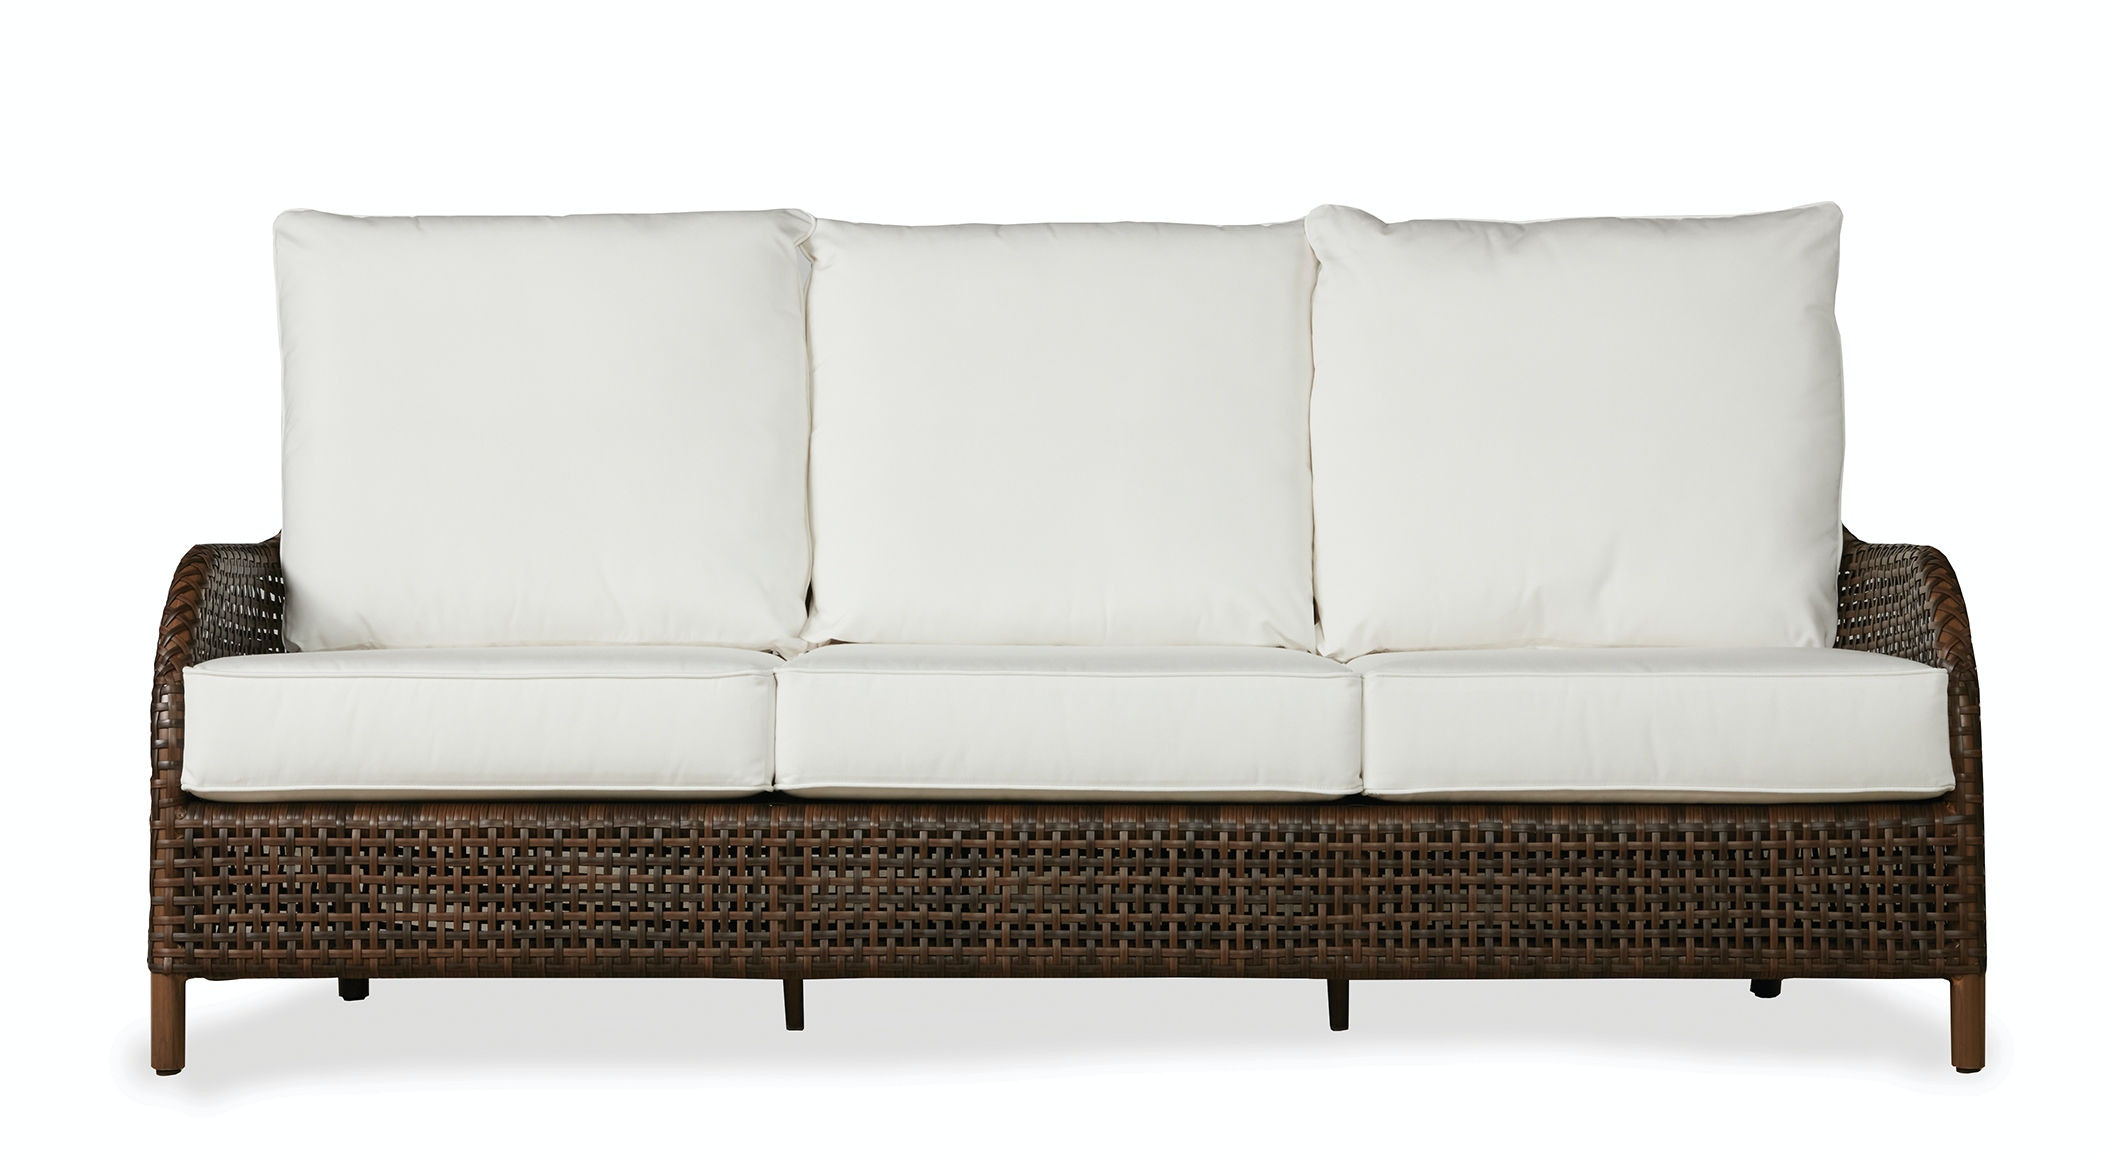 Fire House Casual Outdoor Furniture Charlotte Raleigh